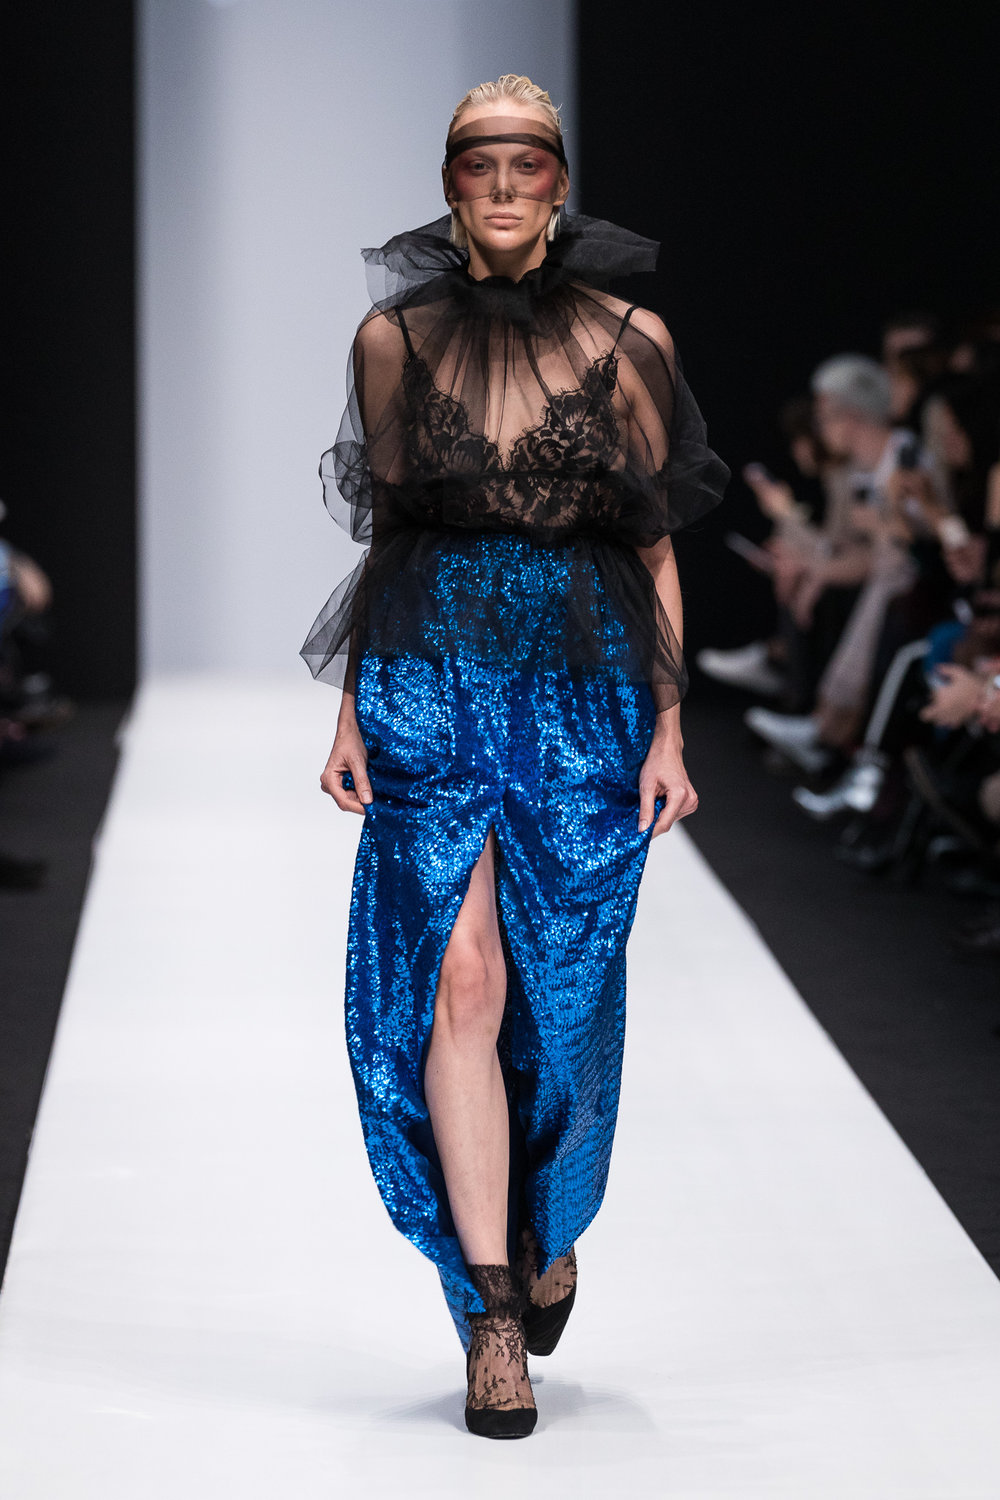 Atelier for Gala Borzova | Mercedes-Benz Fashion Week Russia 201